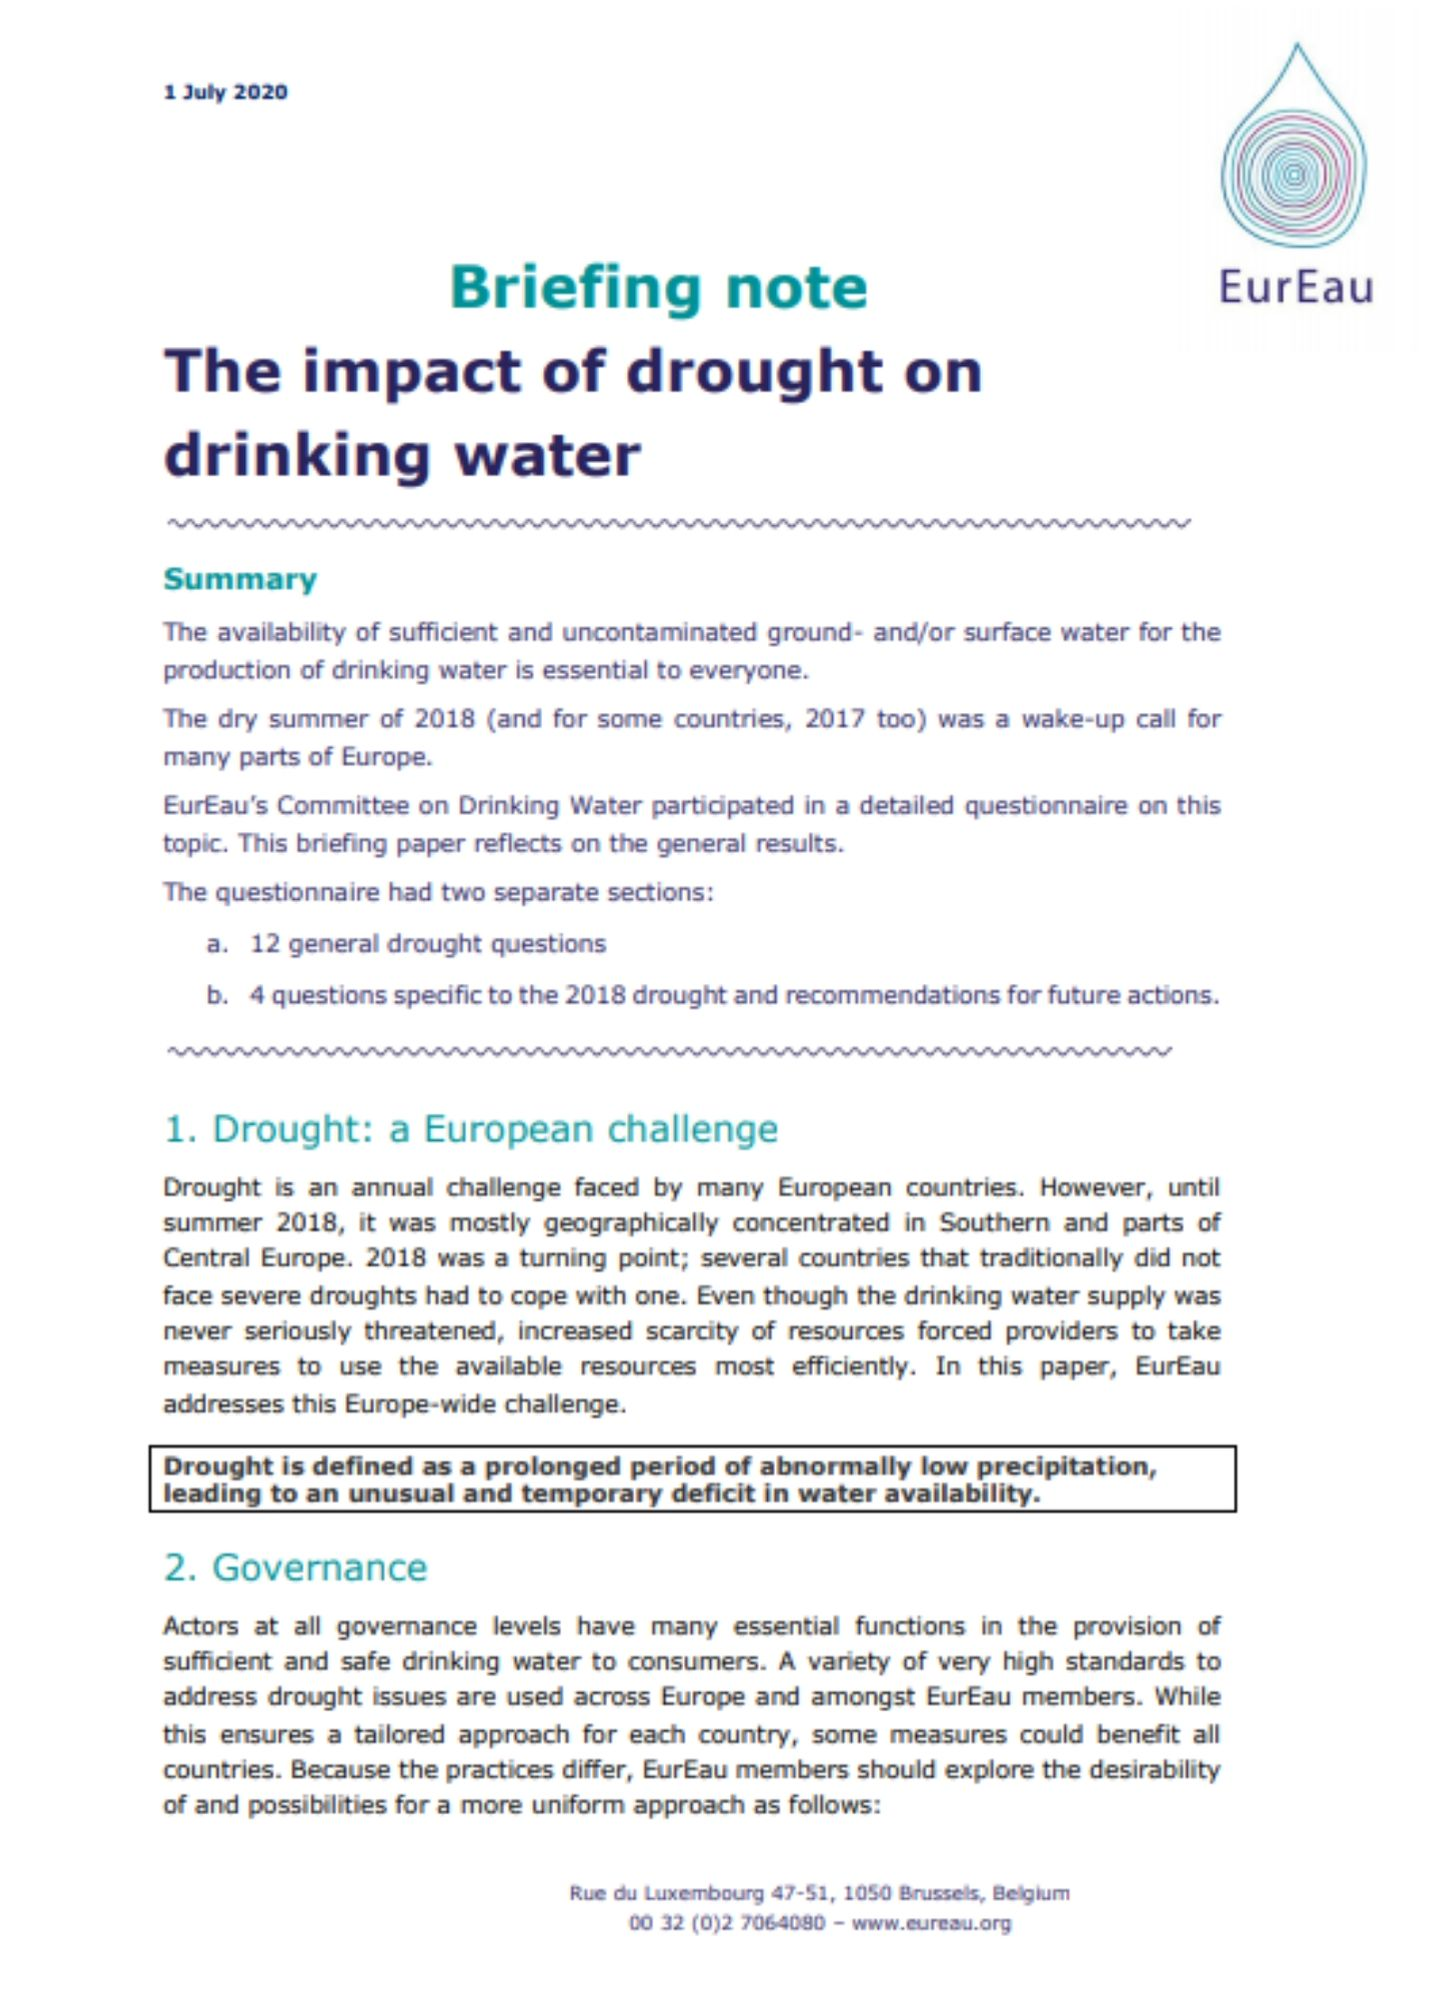 Briefing note on the impact of drought on drinking water